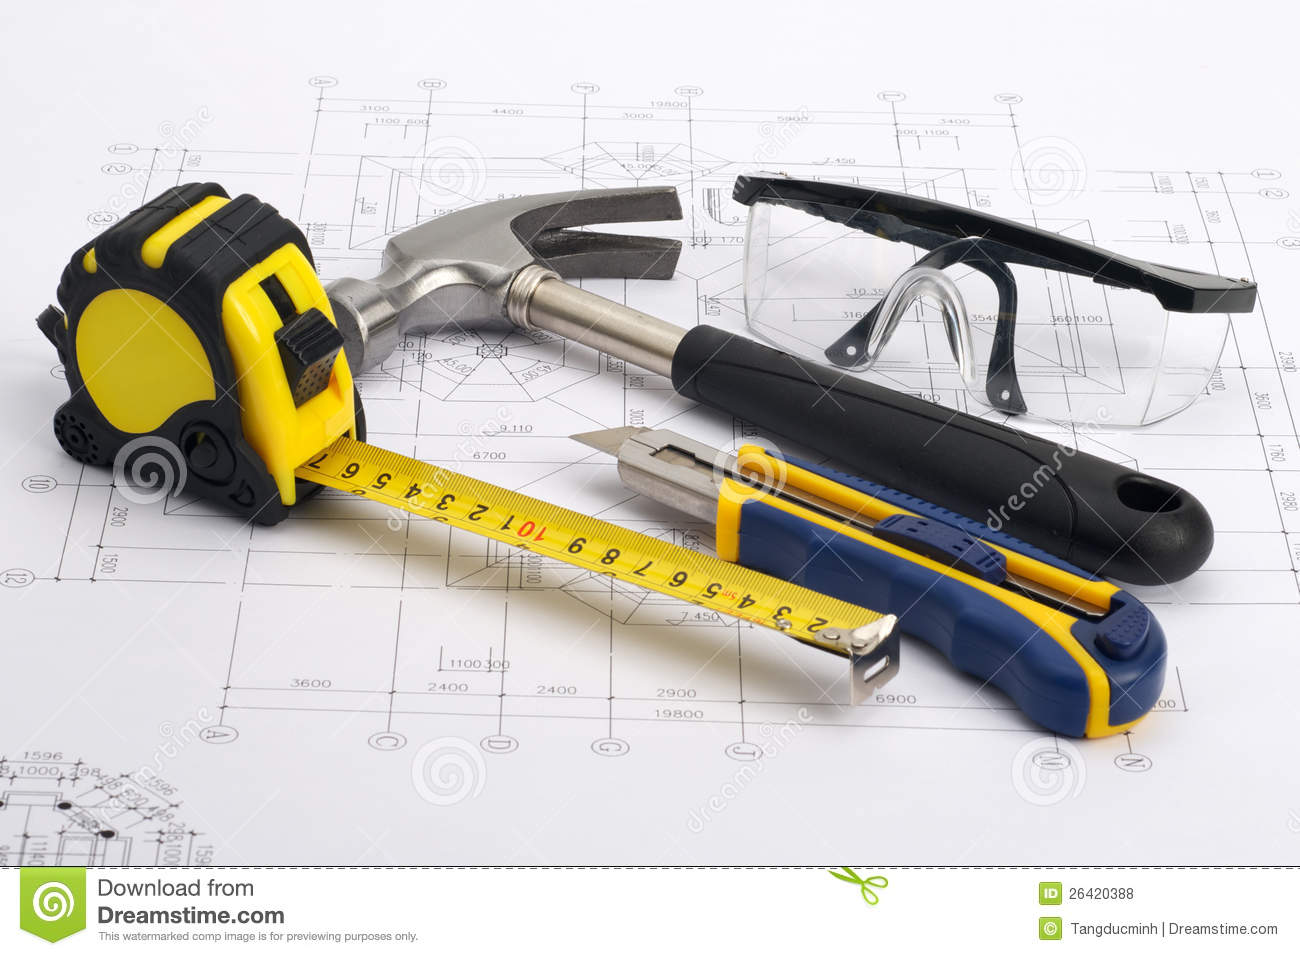 Home tools Construction Concept